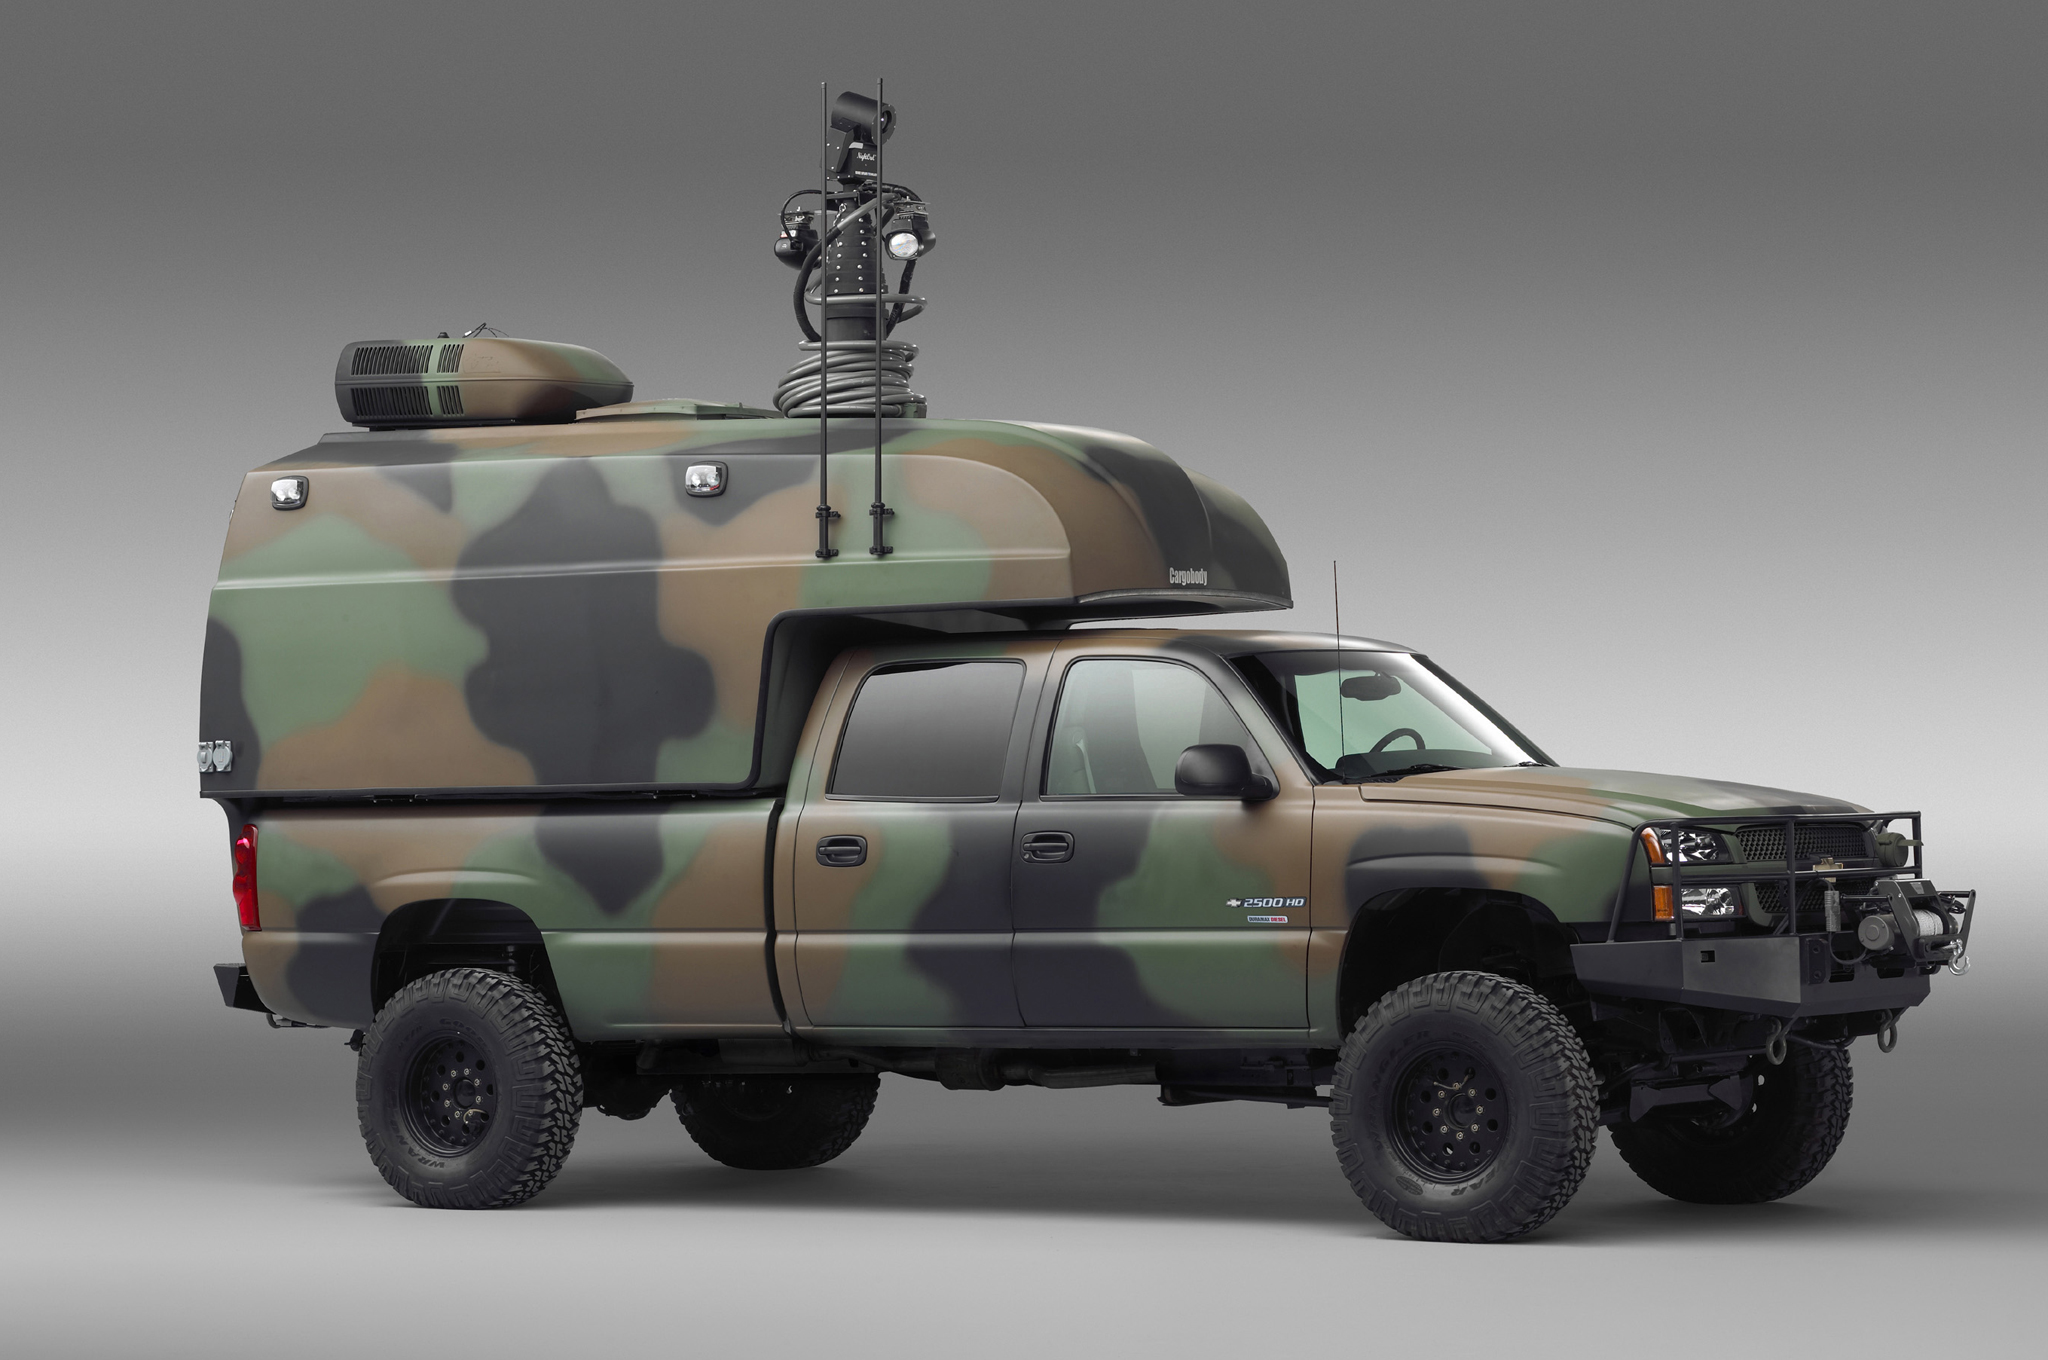 2019 Chevrolet Silverado Hydrogen Military Vehicle photo - 5